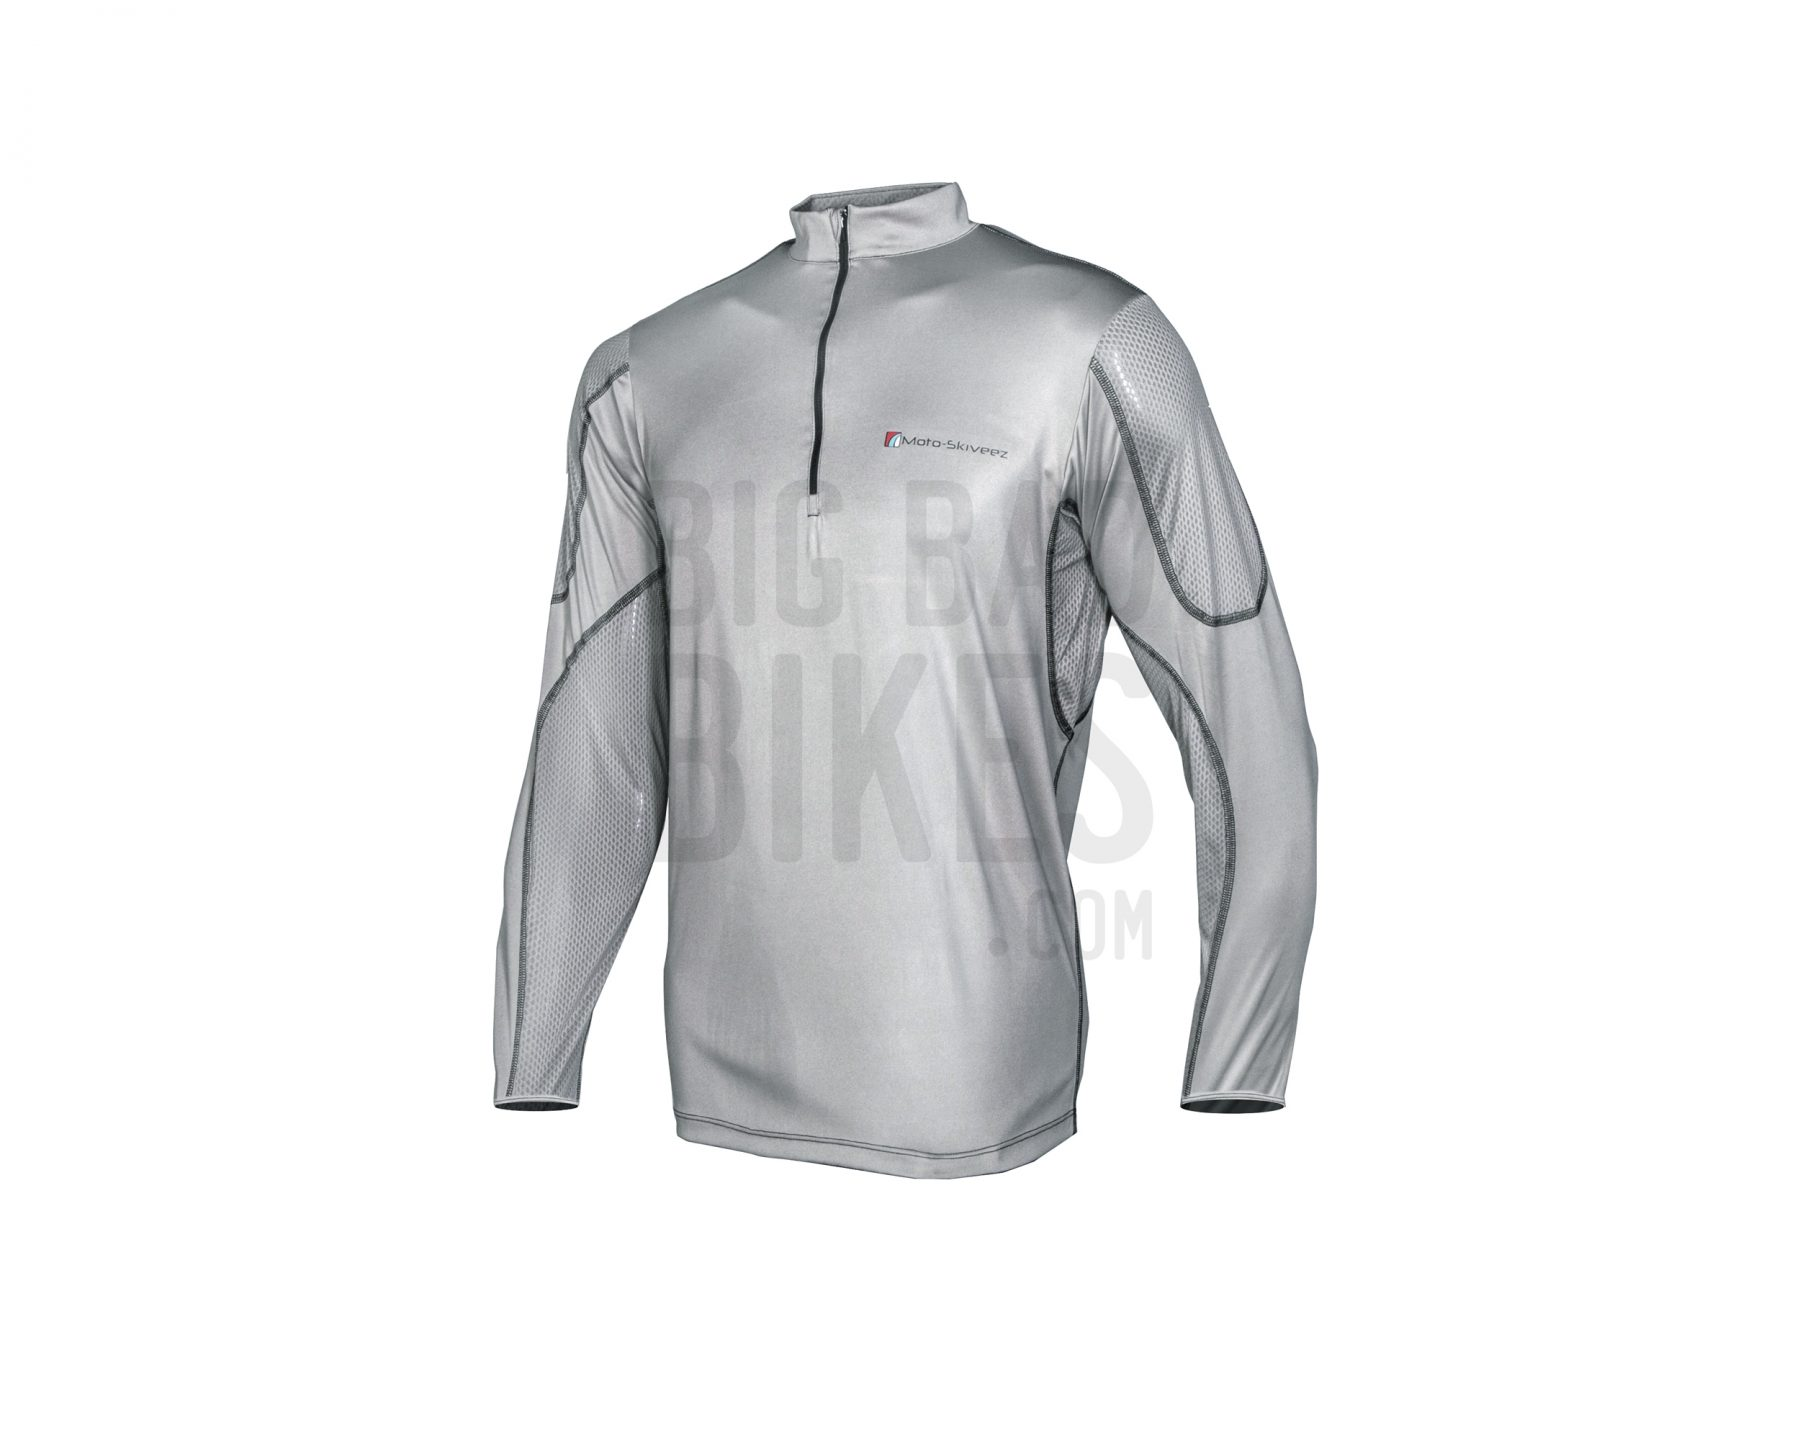 Tech Shirt Gry front